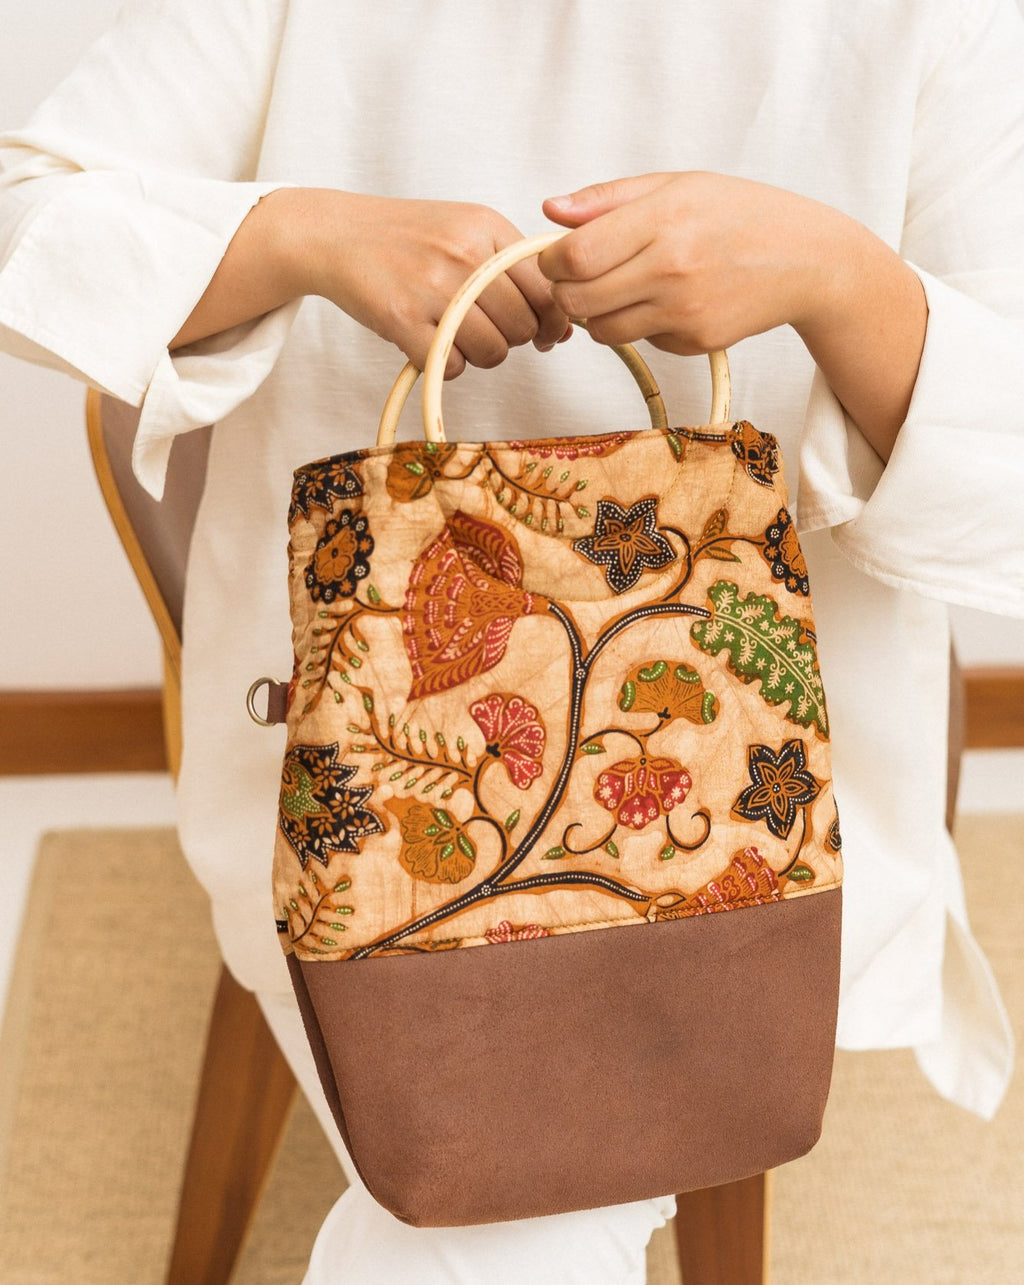 Batik Tote Bag. The Sastra Three-Way Tote. Heritage textiles for the modern women. Made by artisans.